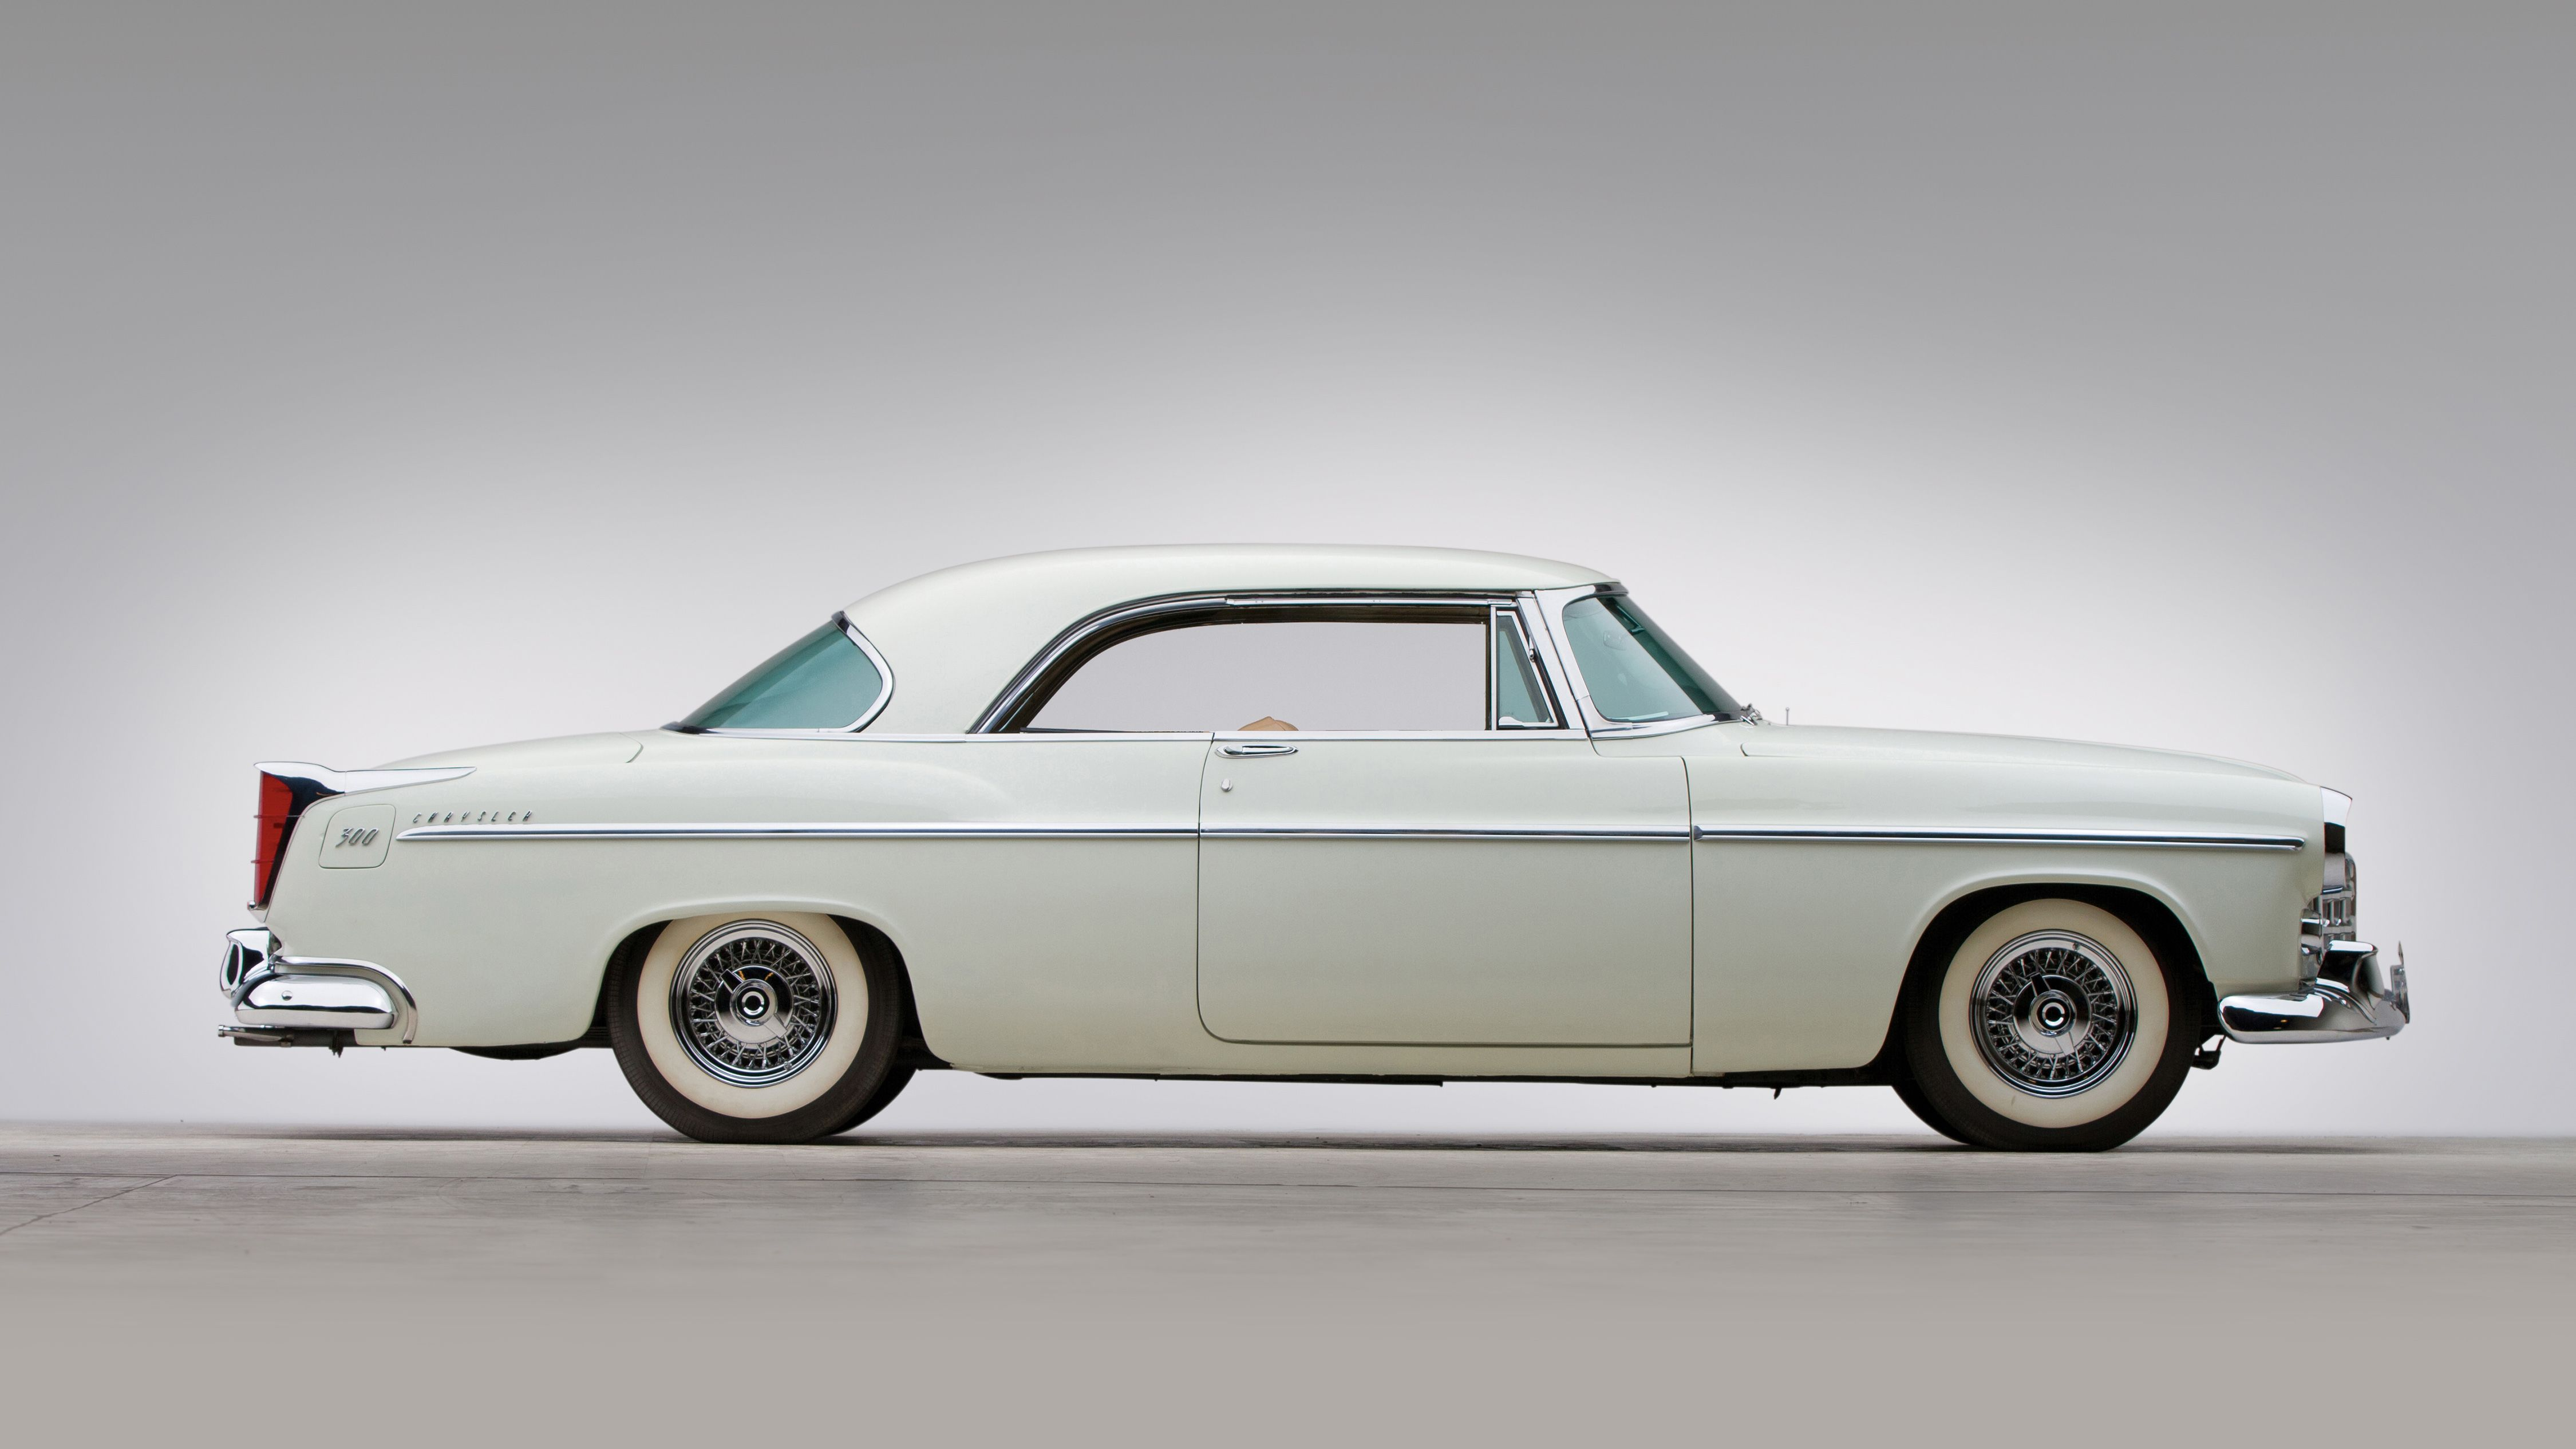 825611f1336e142bde6e0551b36115ee Great Description About 1955 Chrysler 300 for Sale with Inspiring Images Cars Review